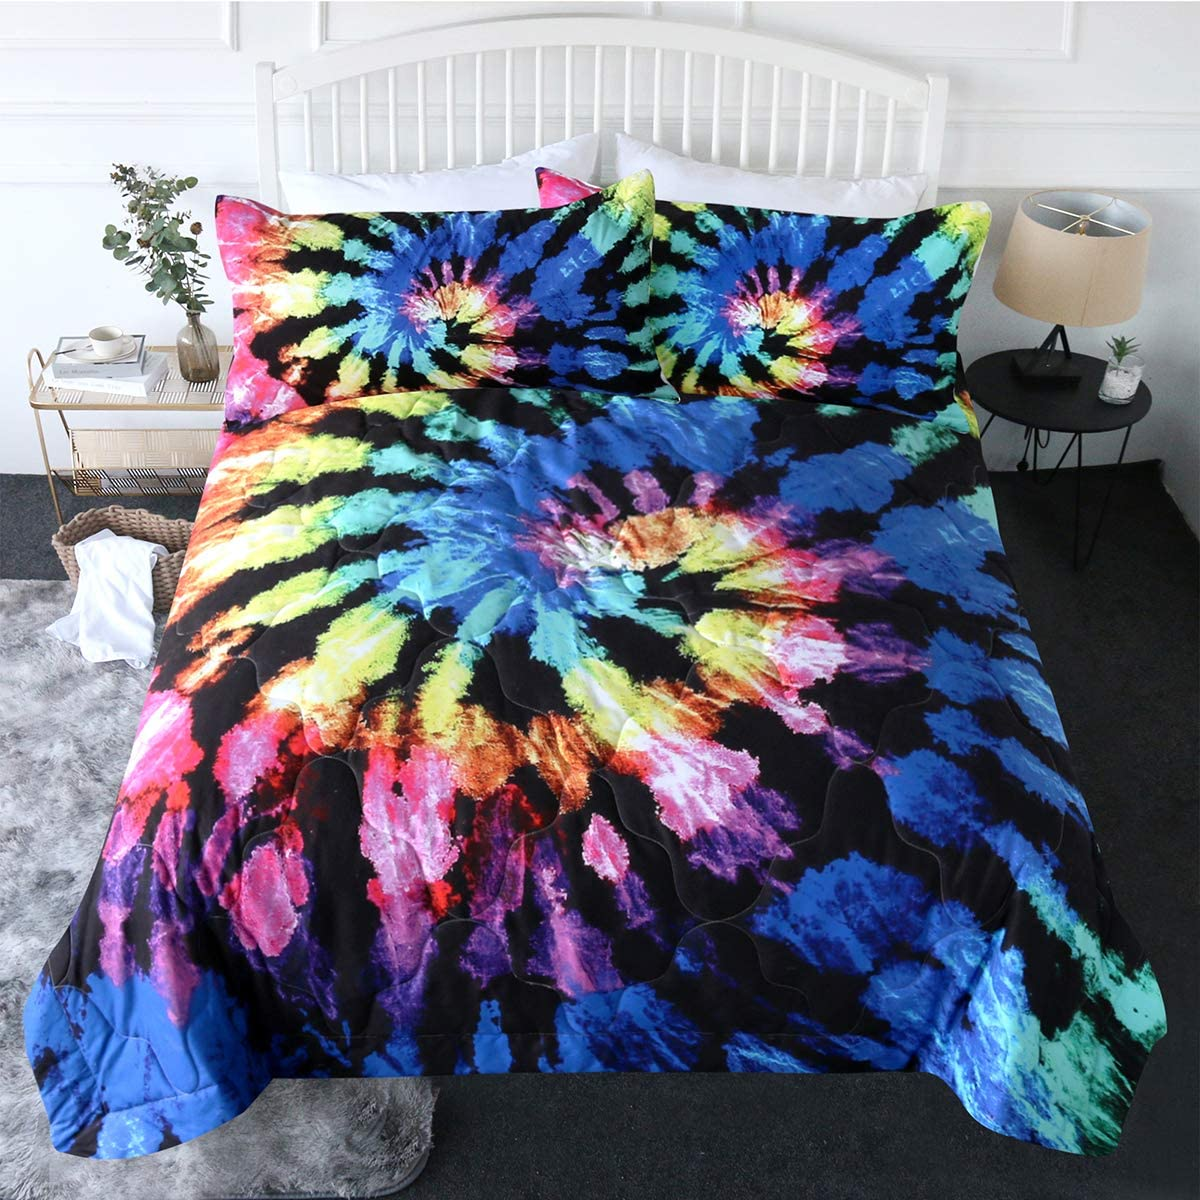 BlessLiving 3 Piece Tie Dye Comforter Set with Pillow Shams Bedding Set 3D Printed Reversible Comforter Twin Size Bedding Sets Soft Comfortable Machine Washable, Blue Purple Gypsy Hippie Decor